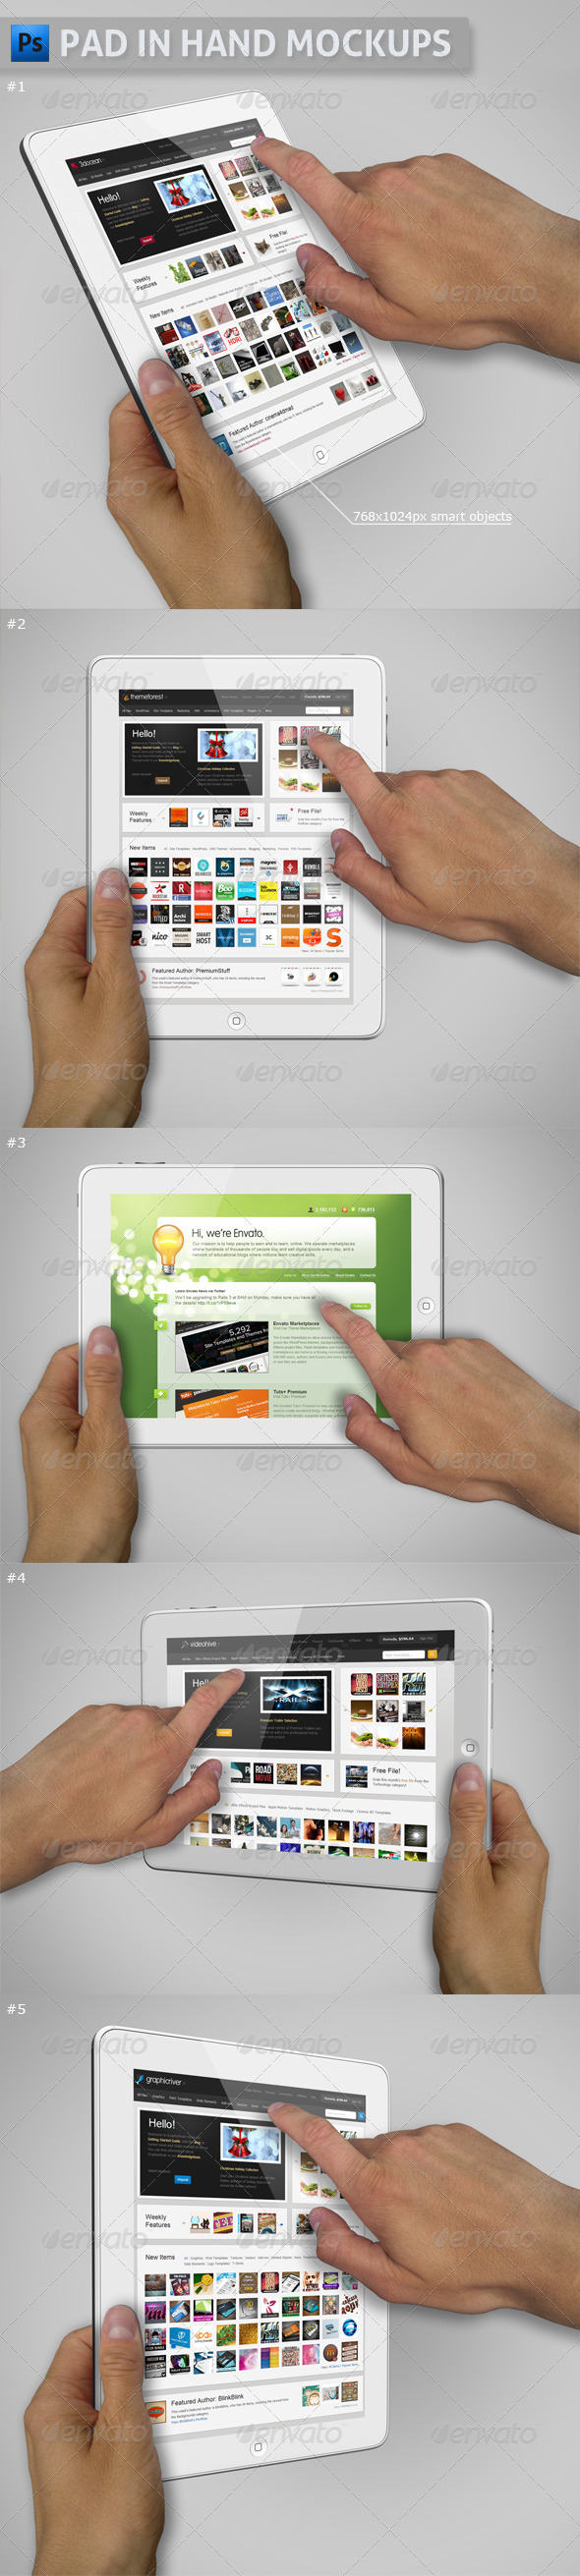 Pad in Hand Mockups - Mobile Displays